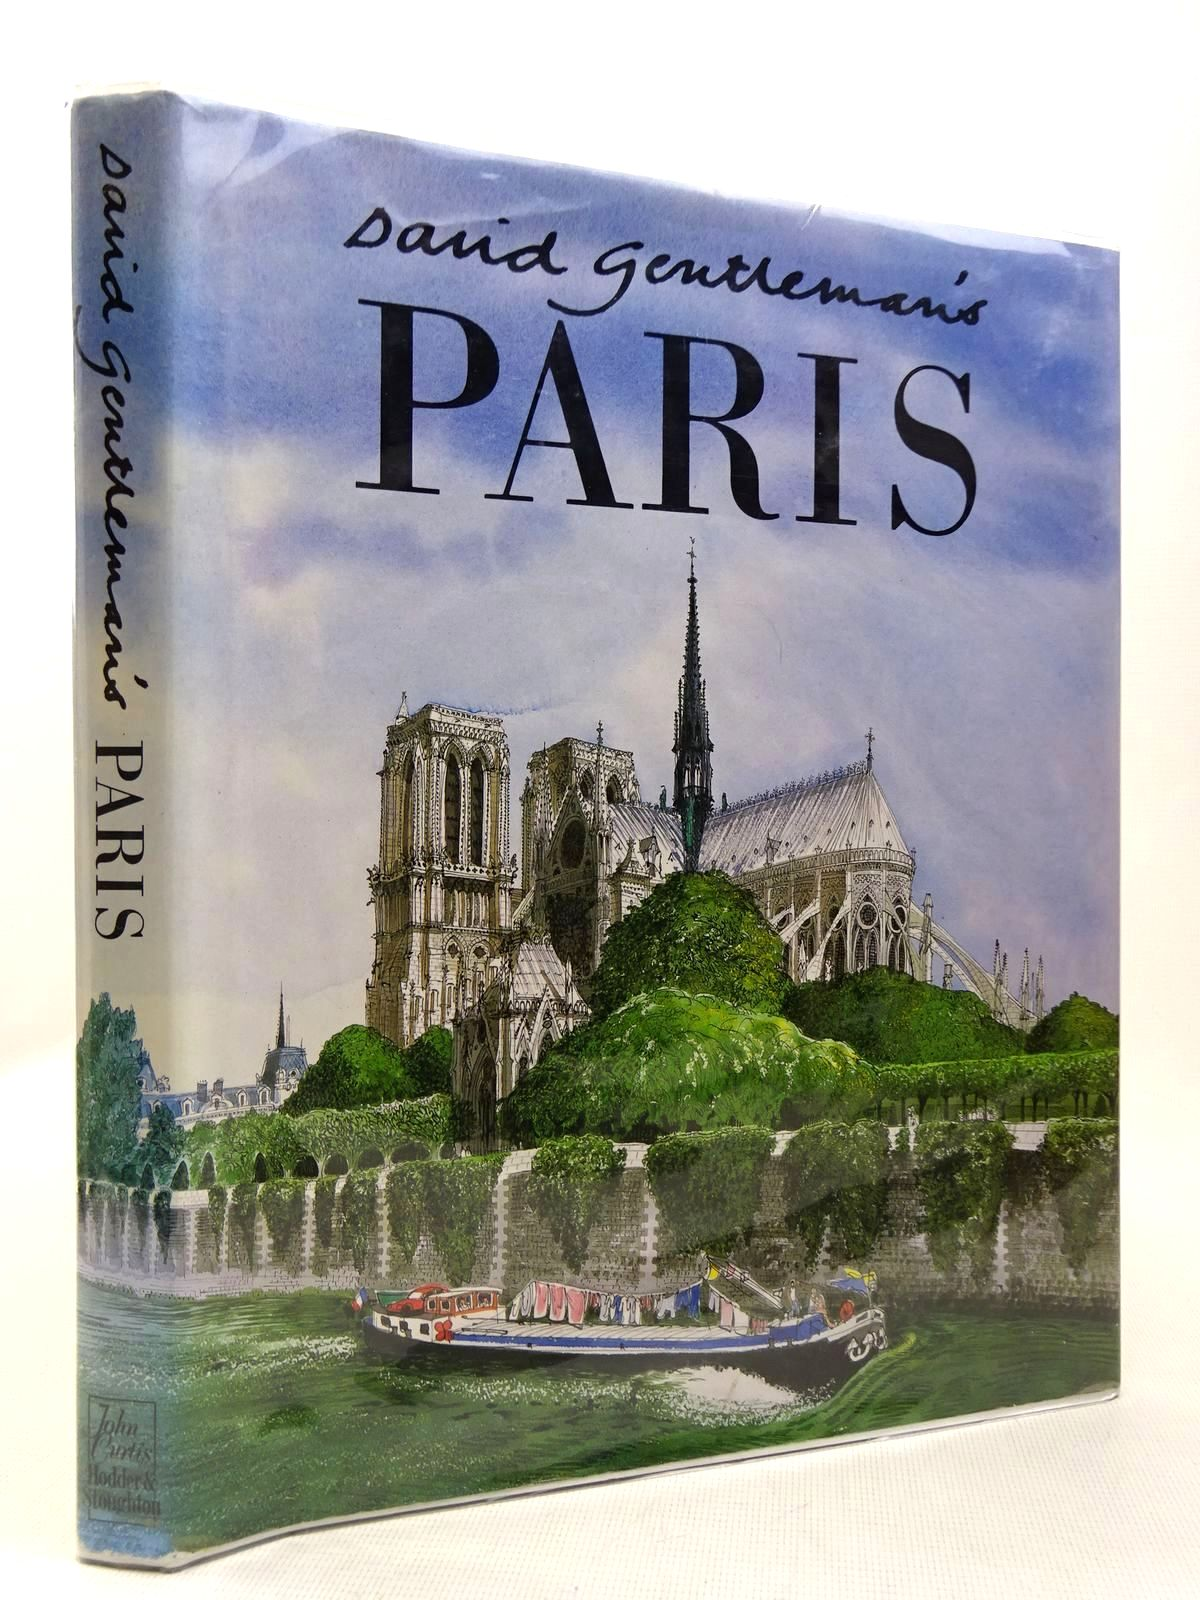 Photo of DAVID GENTLEMAN'S PARIS written by Gentleman, David illustrated by Gentleman, David published by Hodder & Stoughton (STOCK CODE: 2129316)  for sale by Stella & Rose's Books